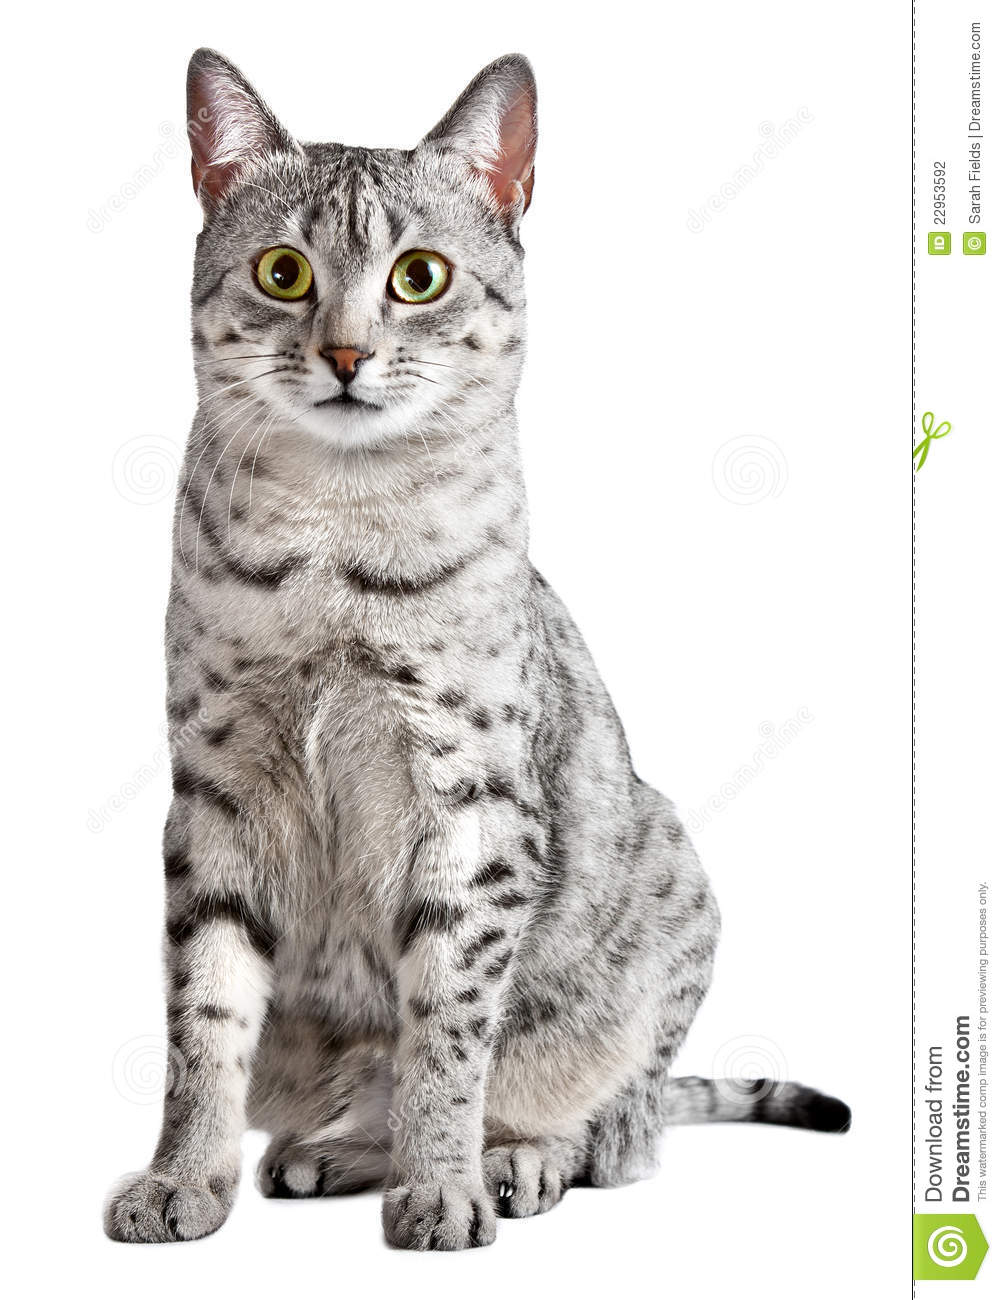 Cute egyptian mau breed cat with green eyes looking straight at the